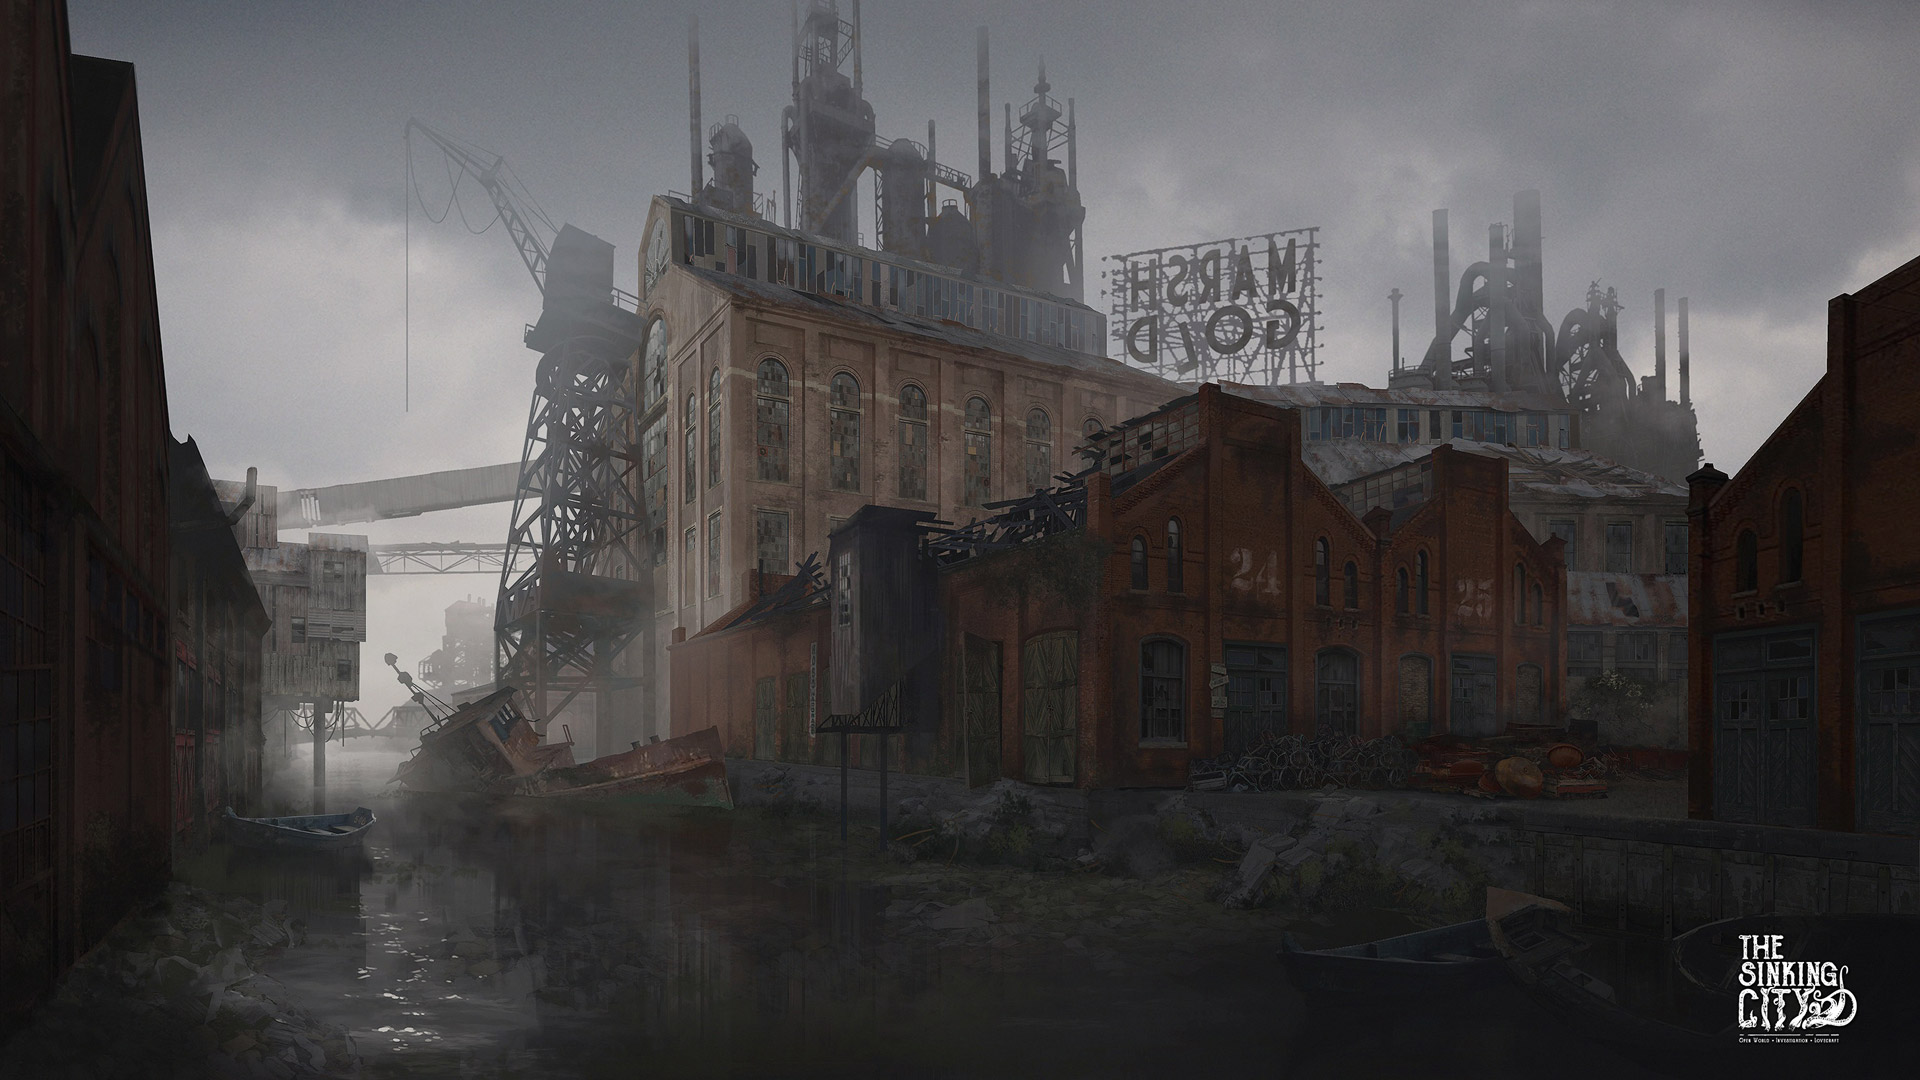 The Sinking City Wallpaper in 1920x1080